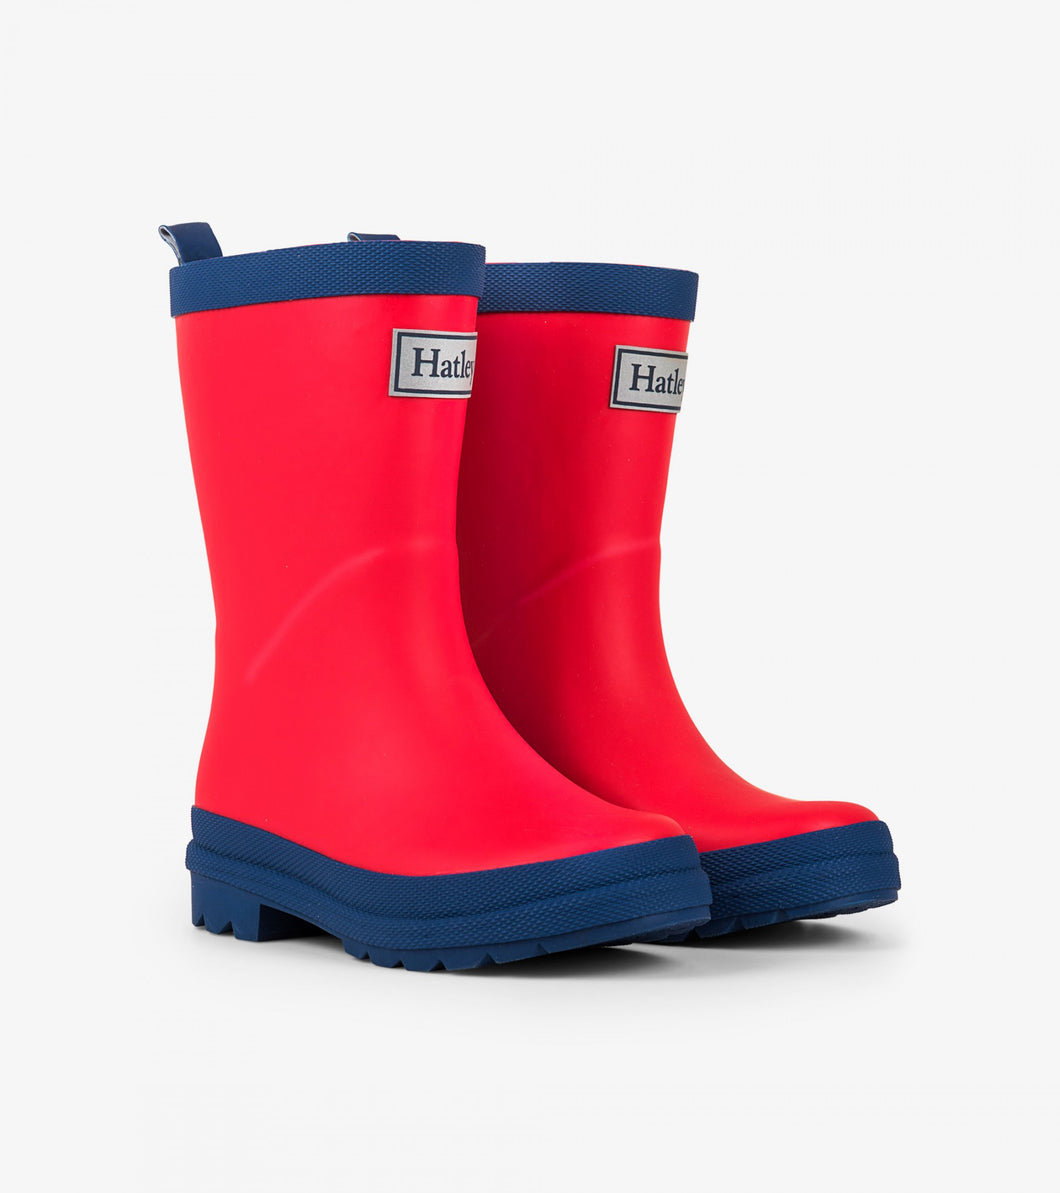 Hatley Red and Navy Rainboots